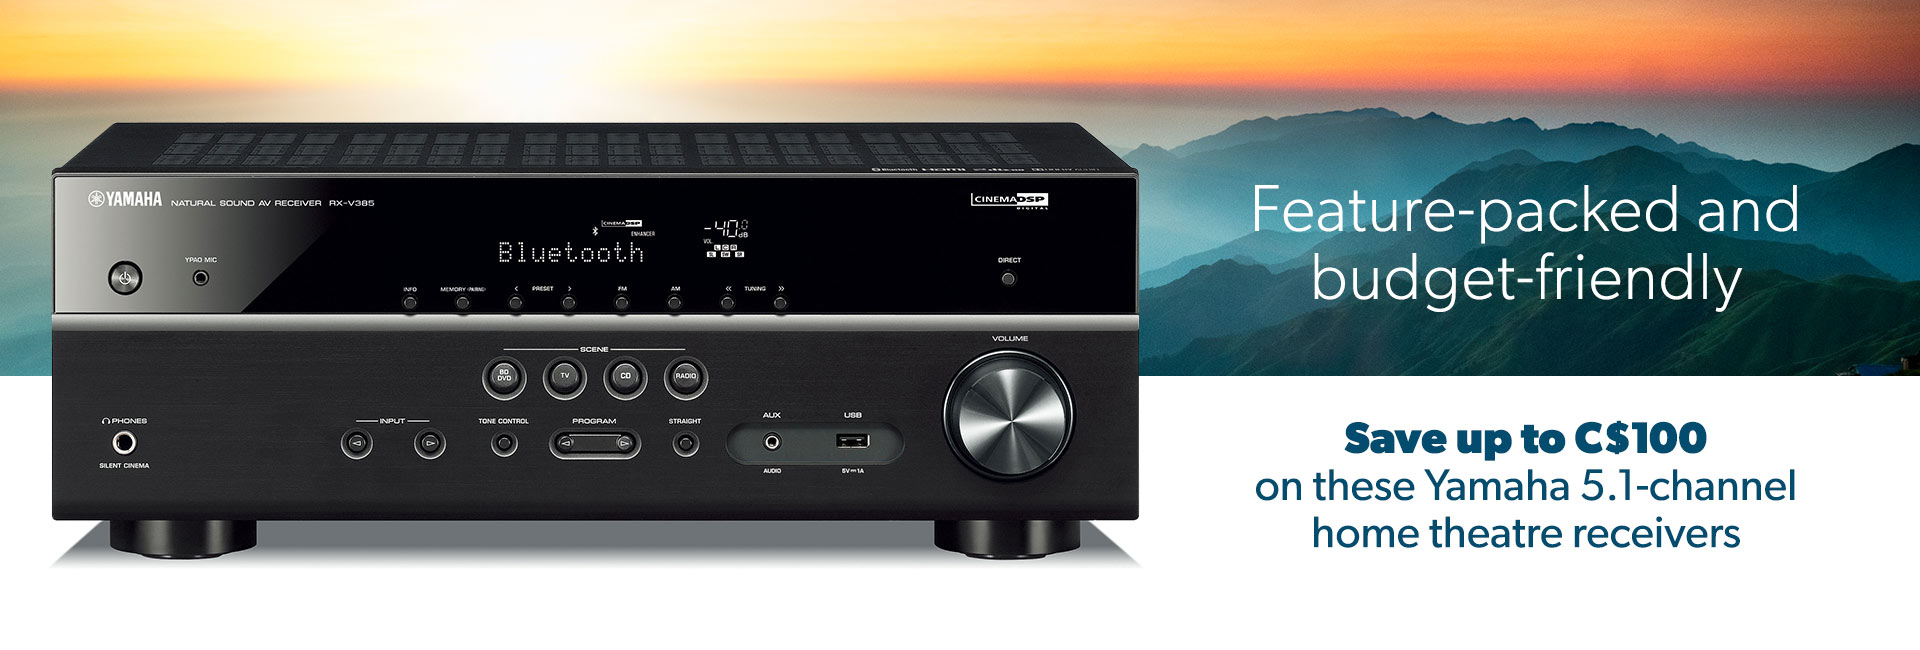 Save up to C$100 on these Yamaha 5.1-channel home theatre receivers